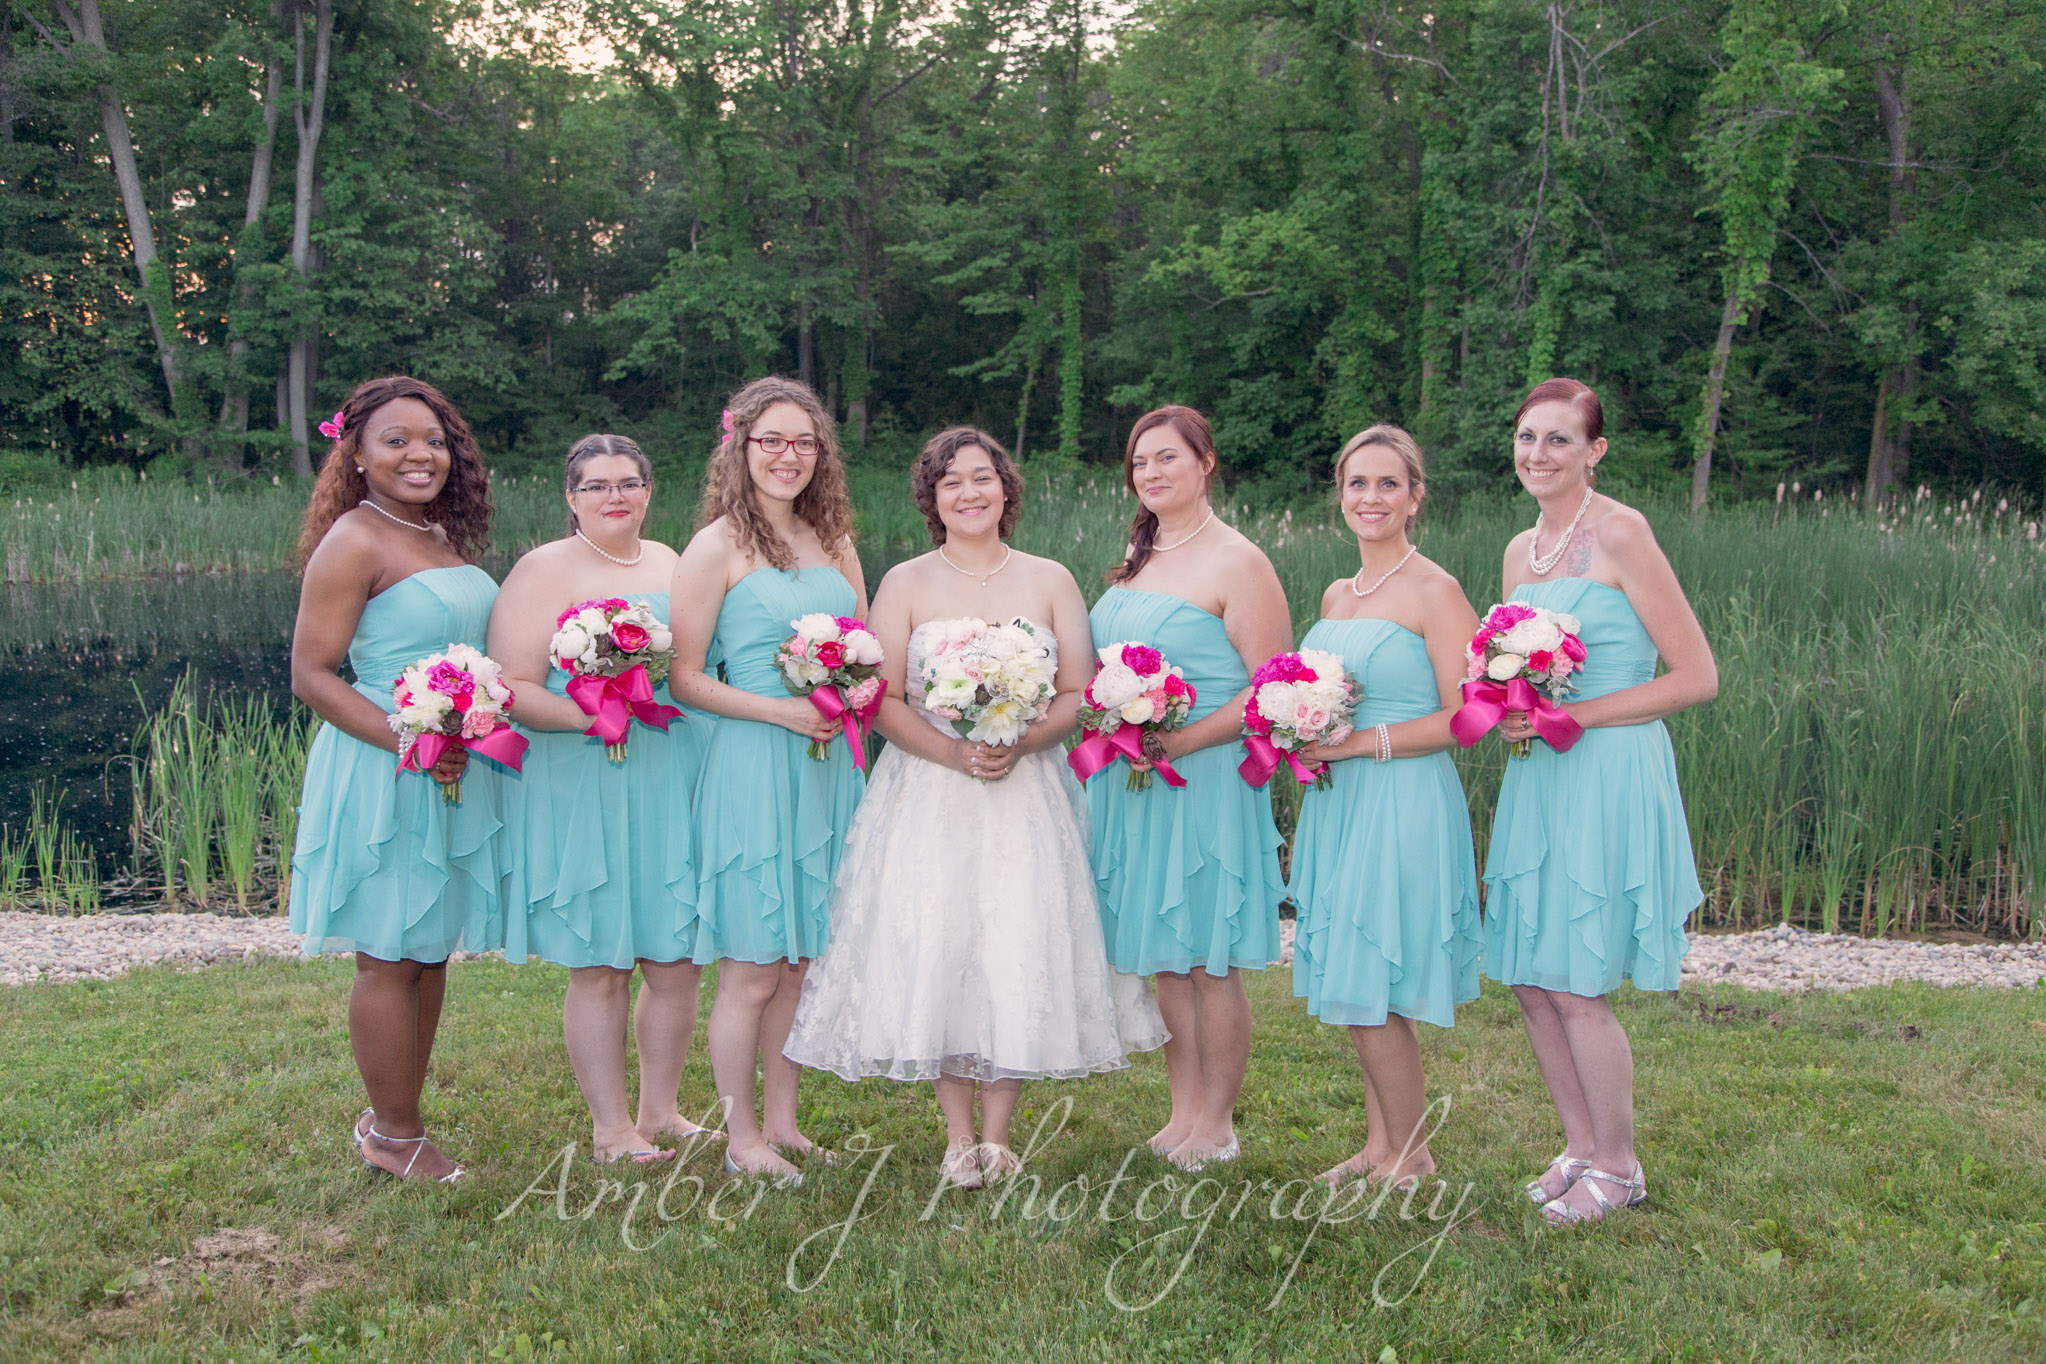 Sommer_Wedding_AmberJphotography_24.jpg